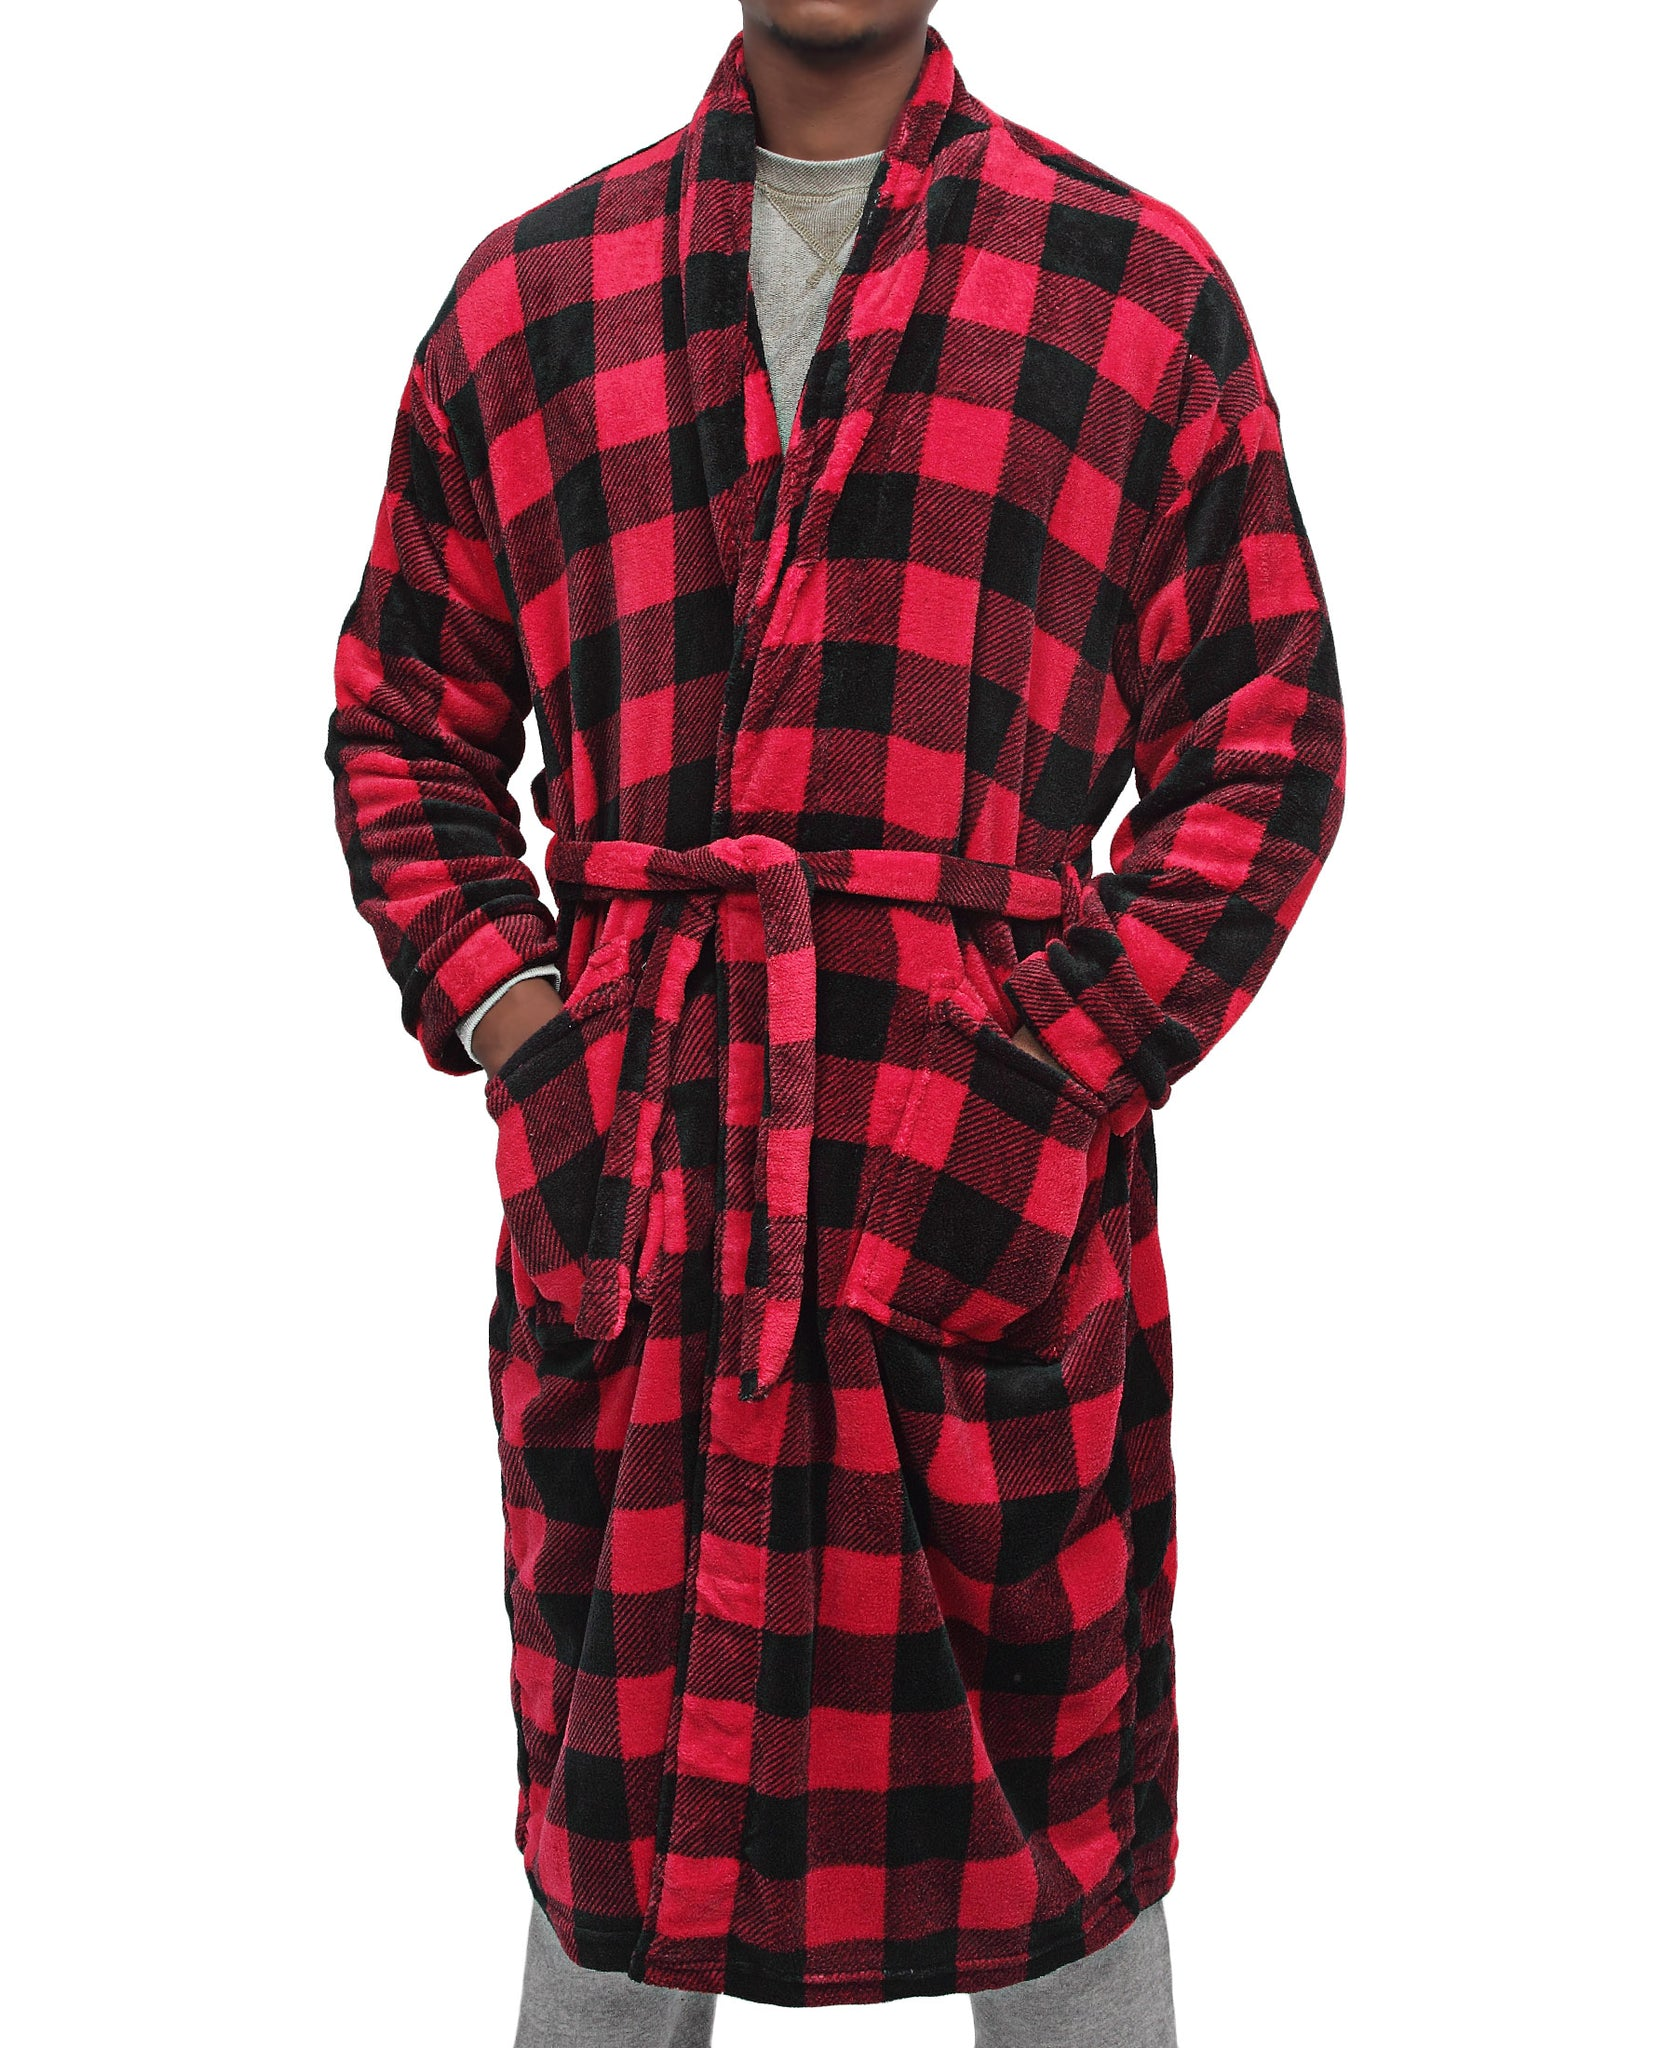 Men's Bathrobe - Red